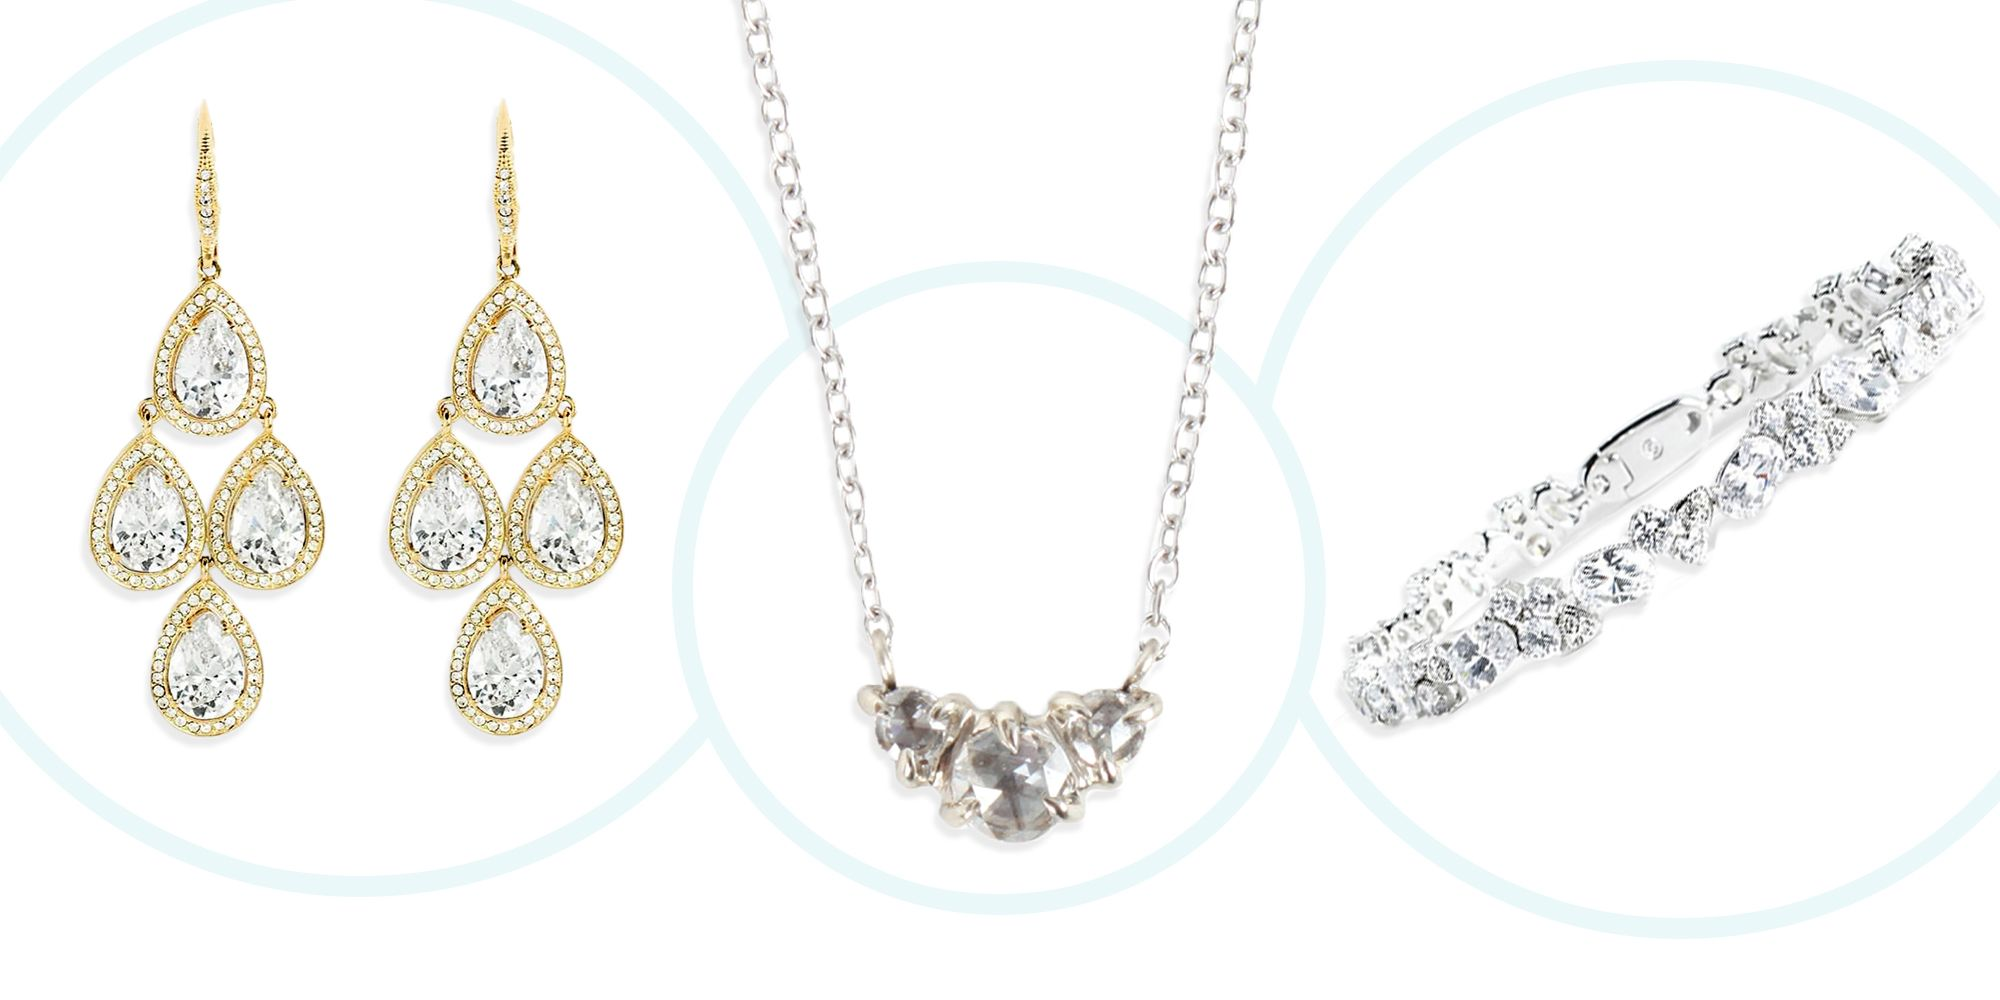 2708d7555 Best Bridal Jewelry for Your Wedding 2018 - Bridal Earrings ...